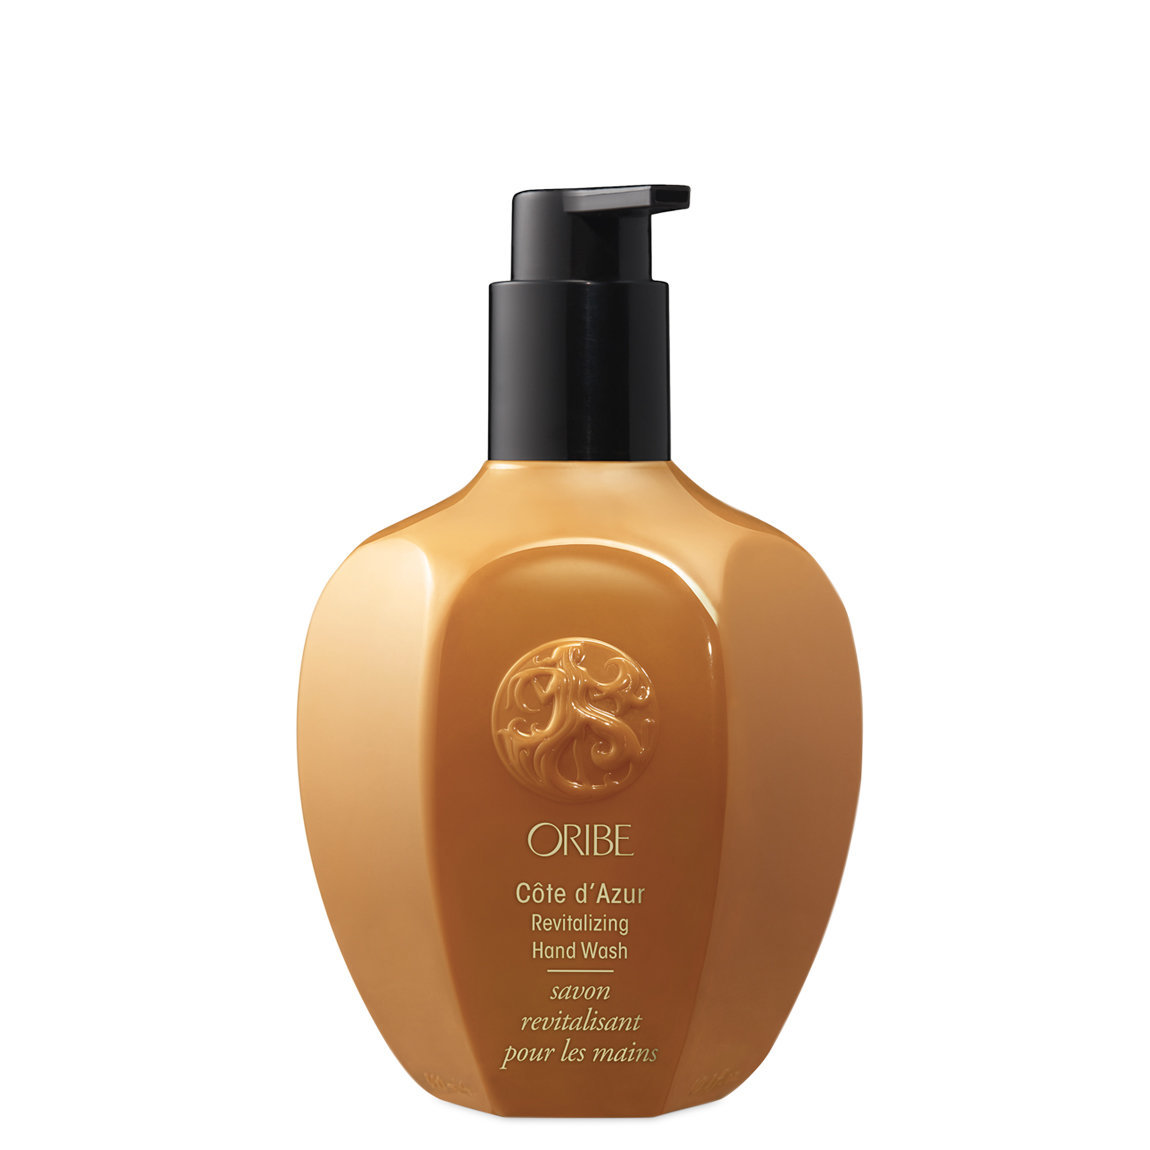 Oribe Cote d'Azur Revitalizing Hand Wash product swatch.